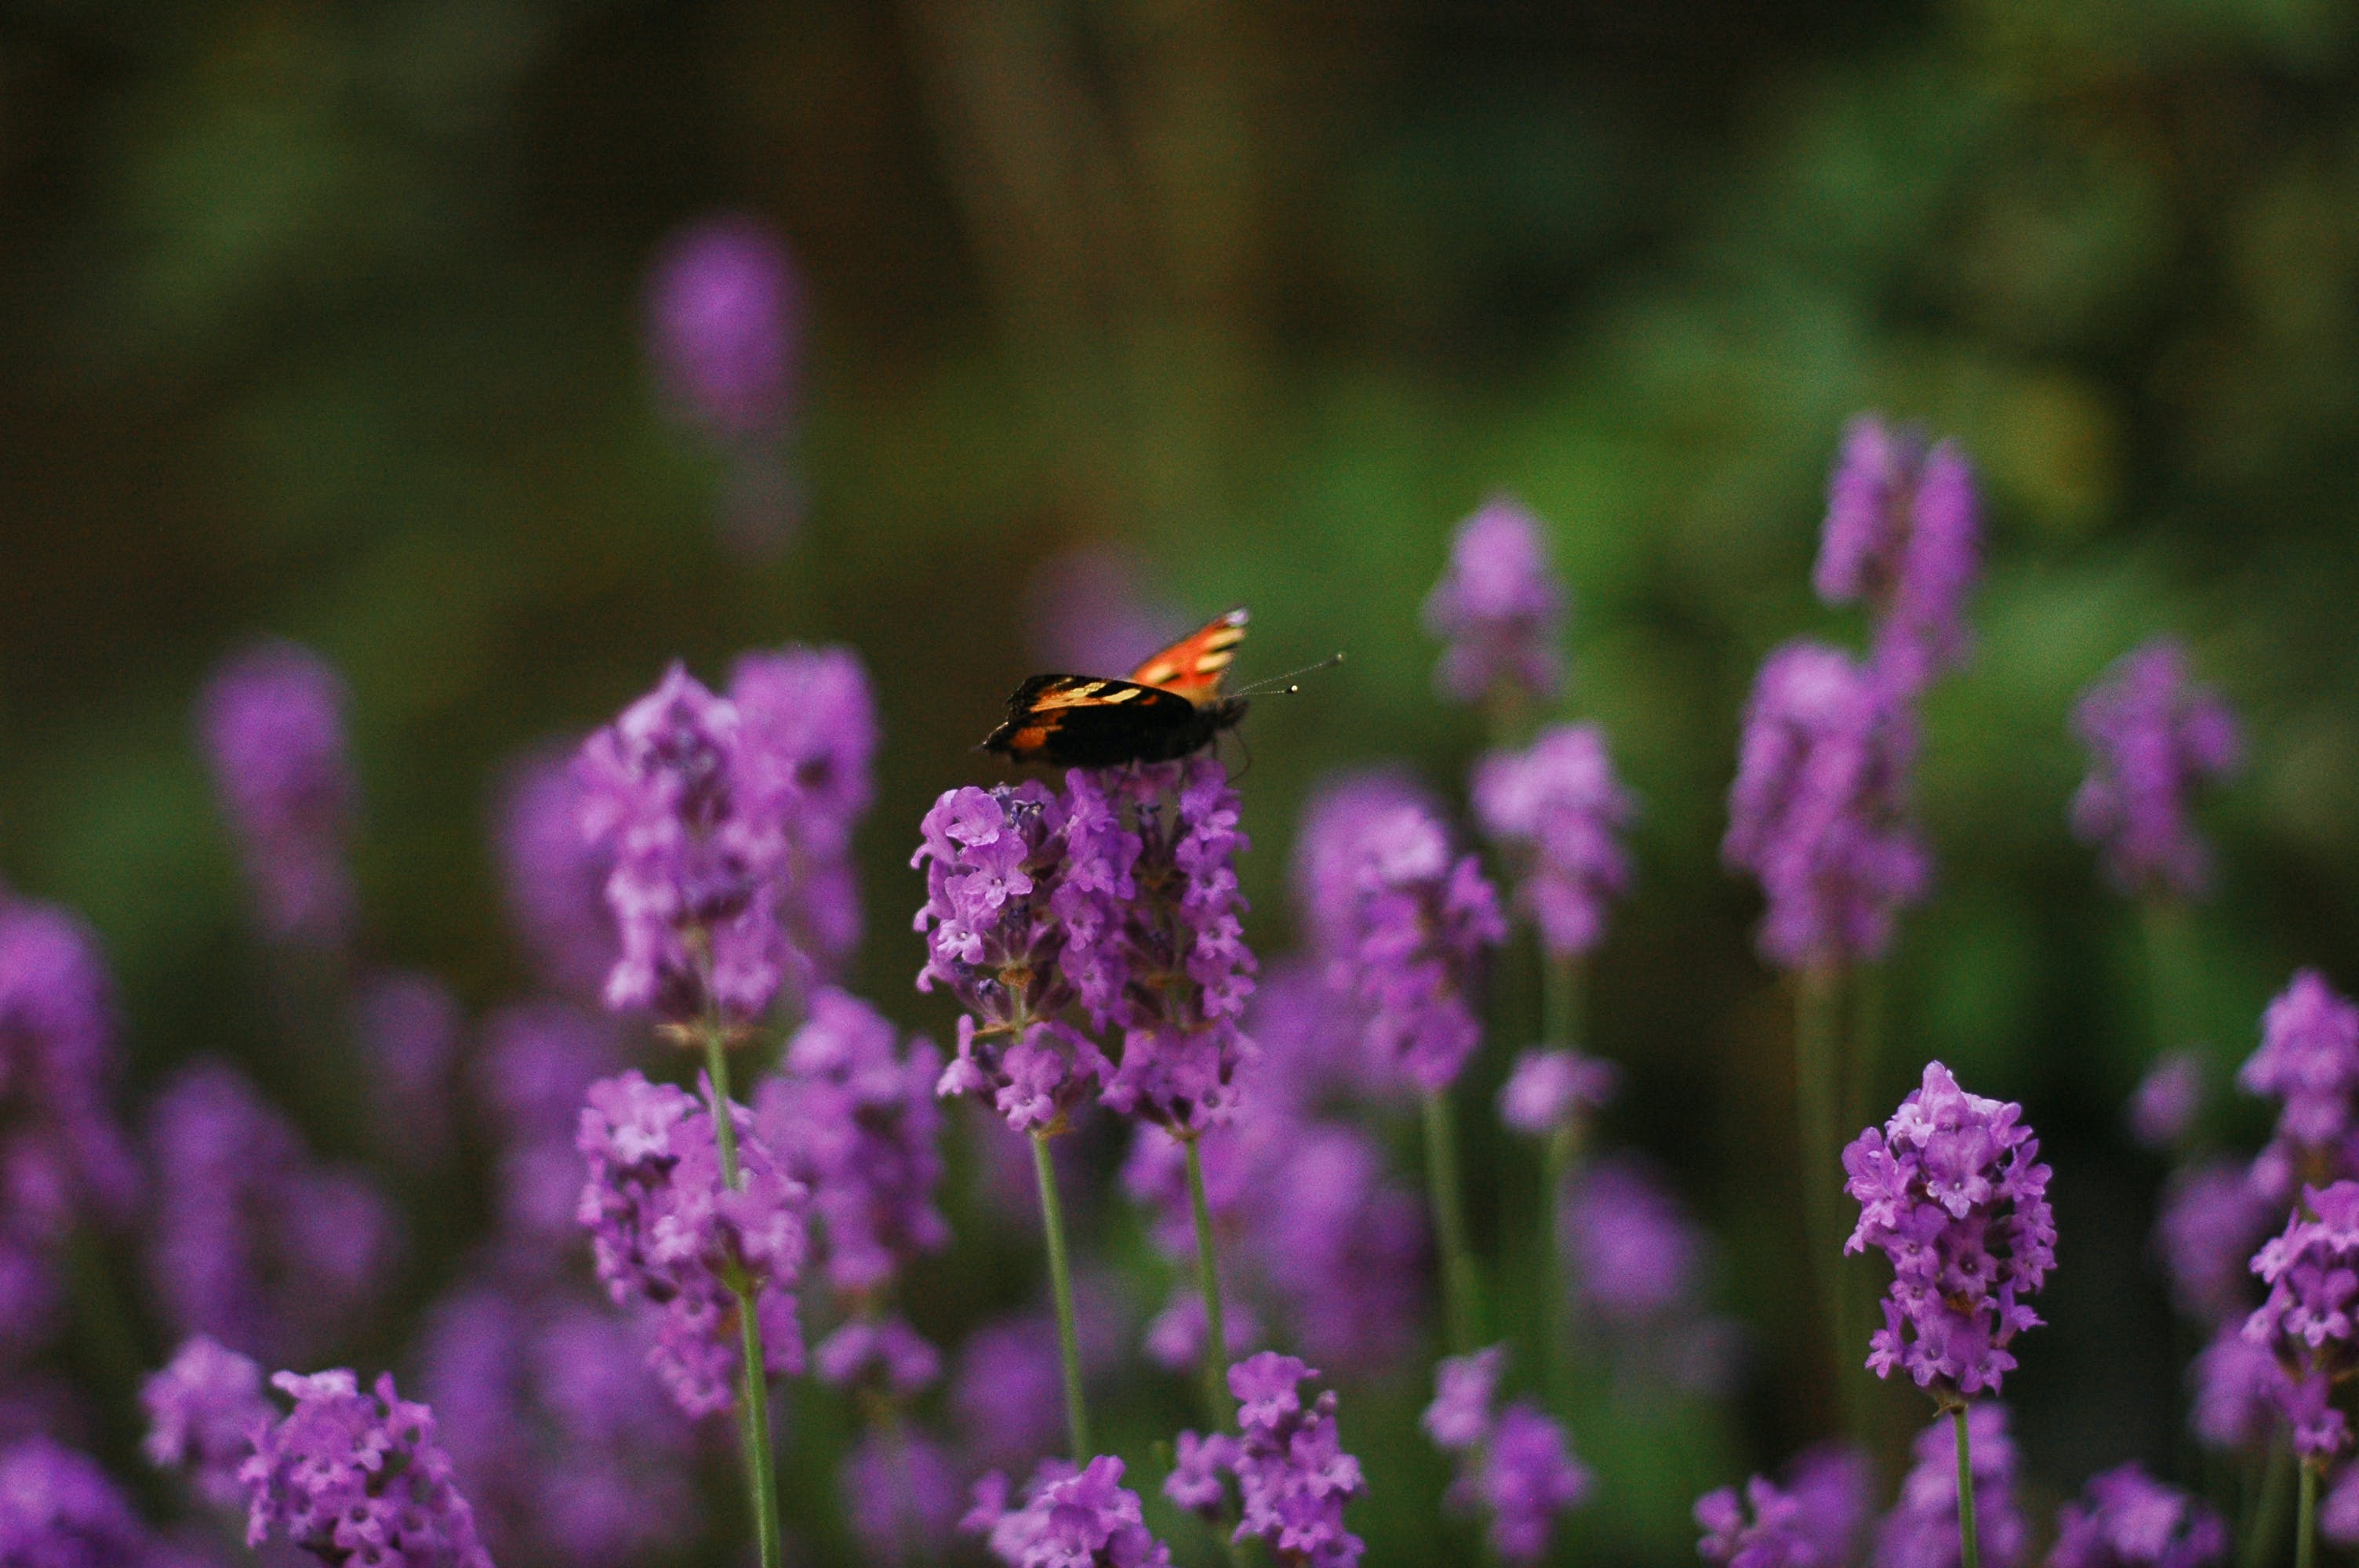 Free stock photo of blooming lavender, butterfly, dof, grainy